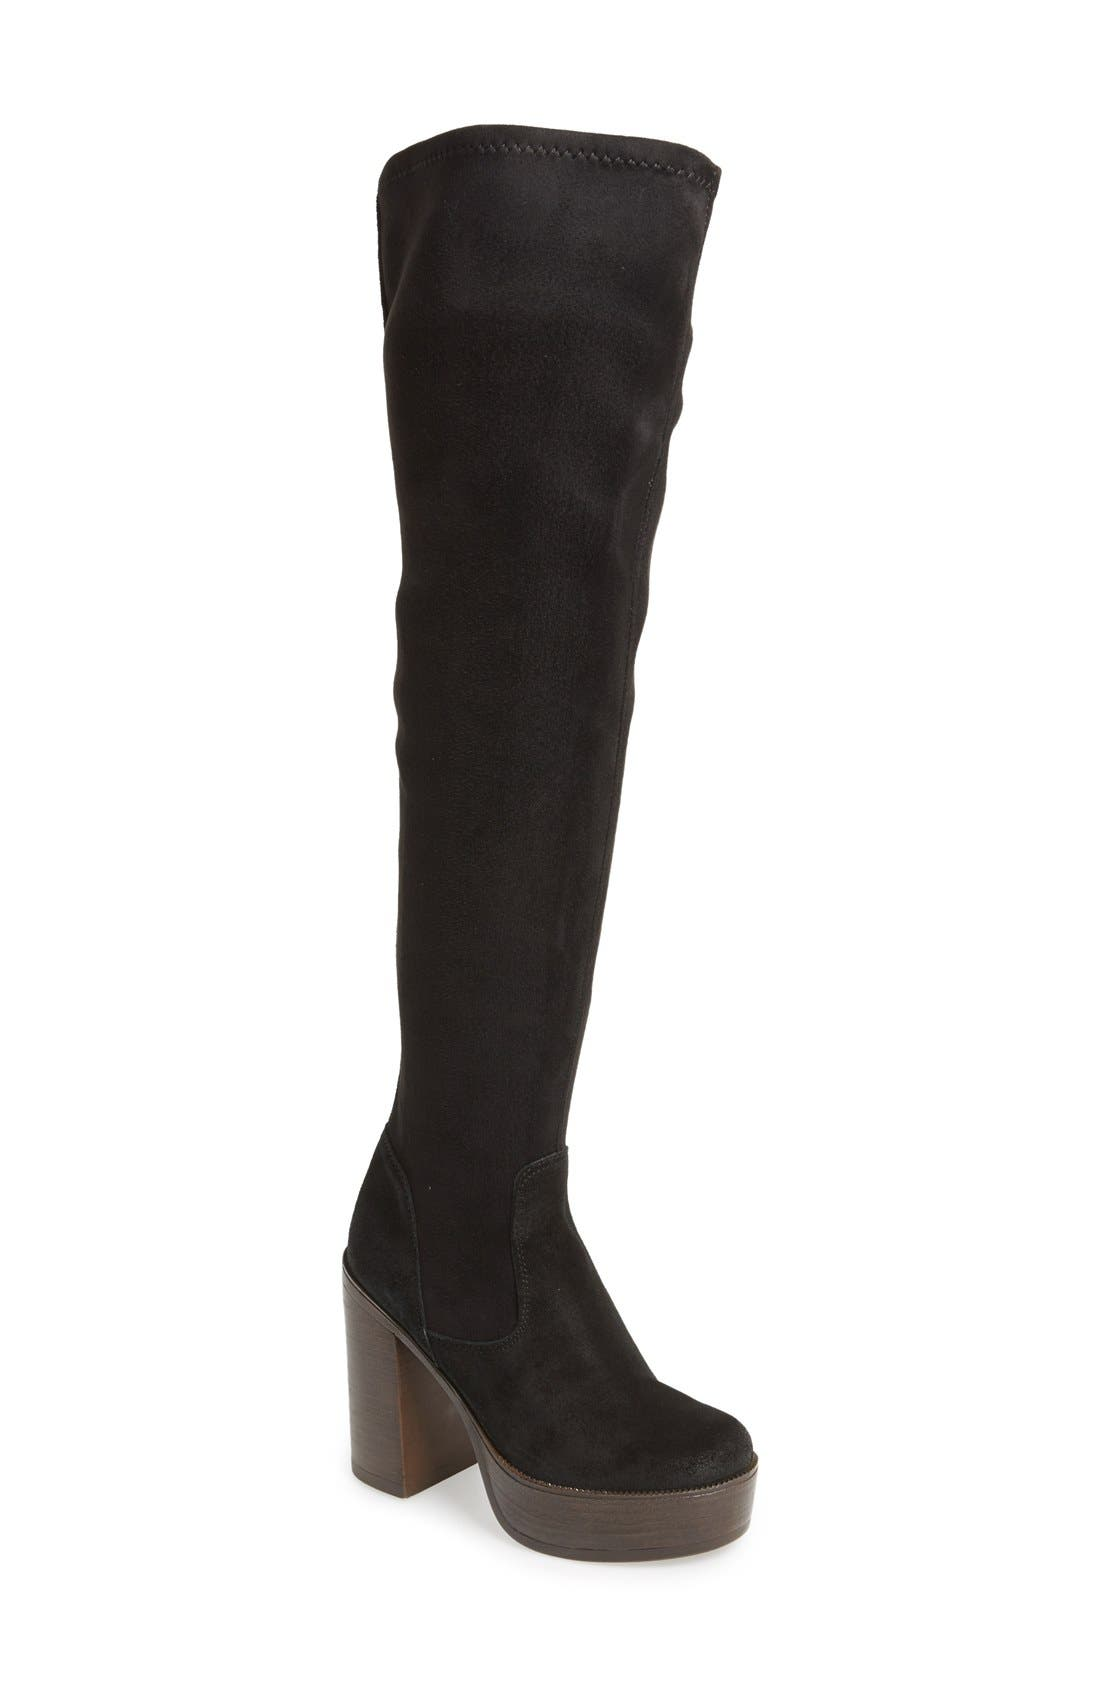 Alternate Image 1 Selected - Topshop 'Buddy '70s' Over the Knee Boot (Women)